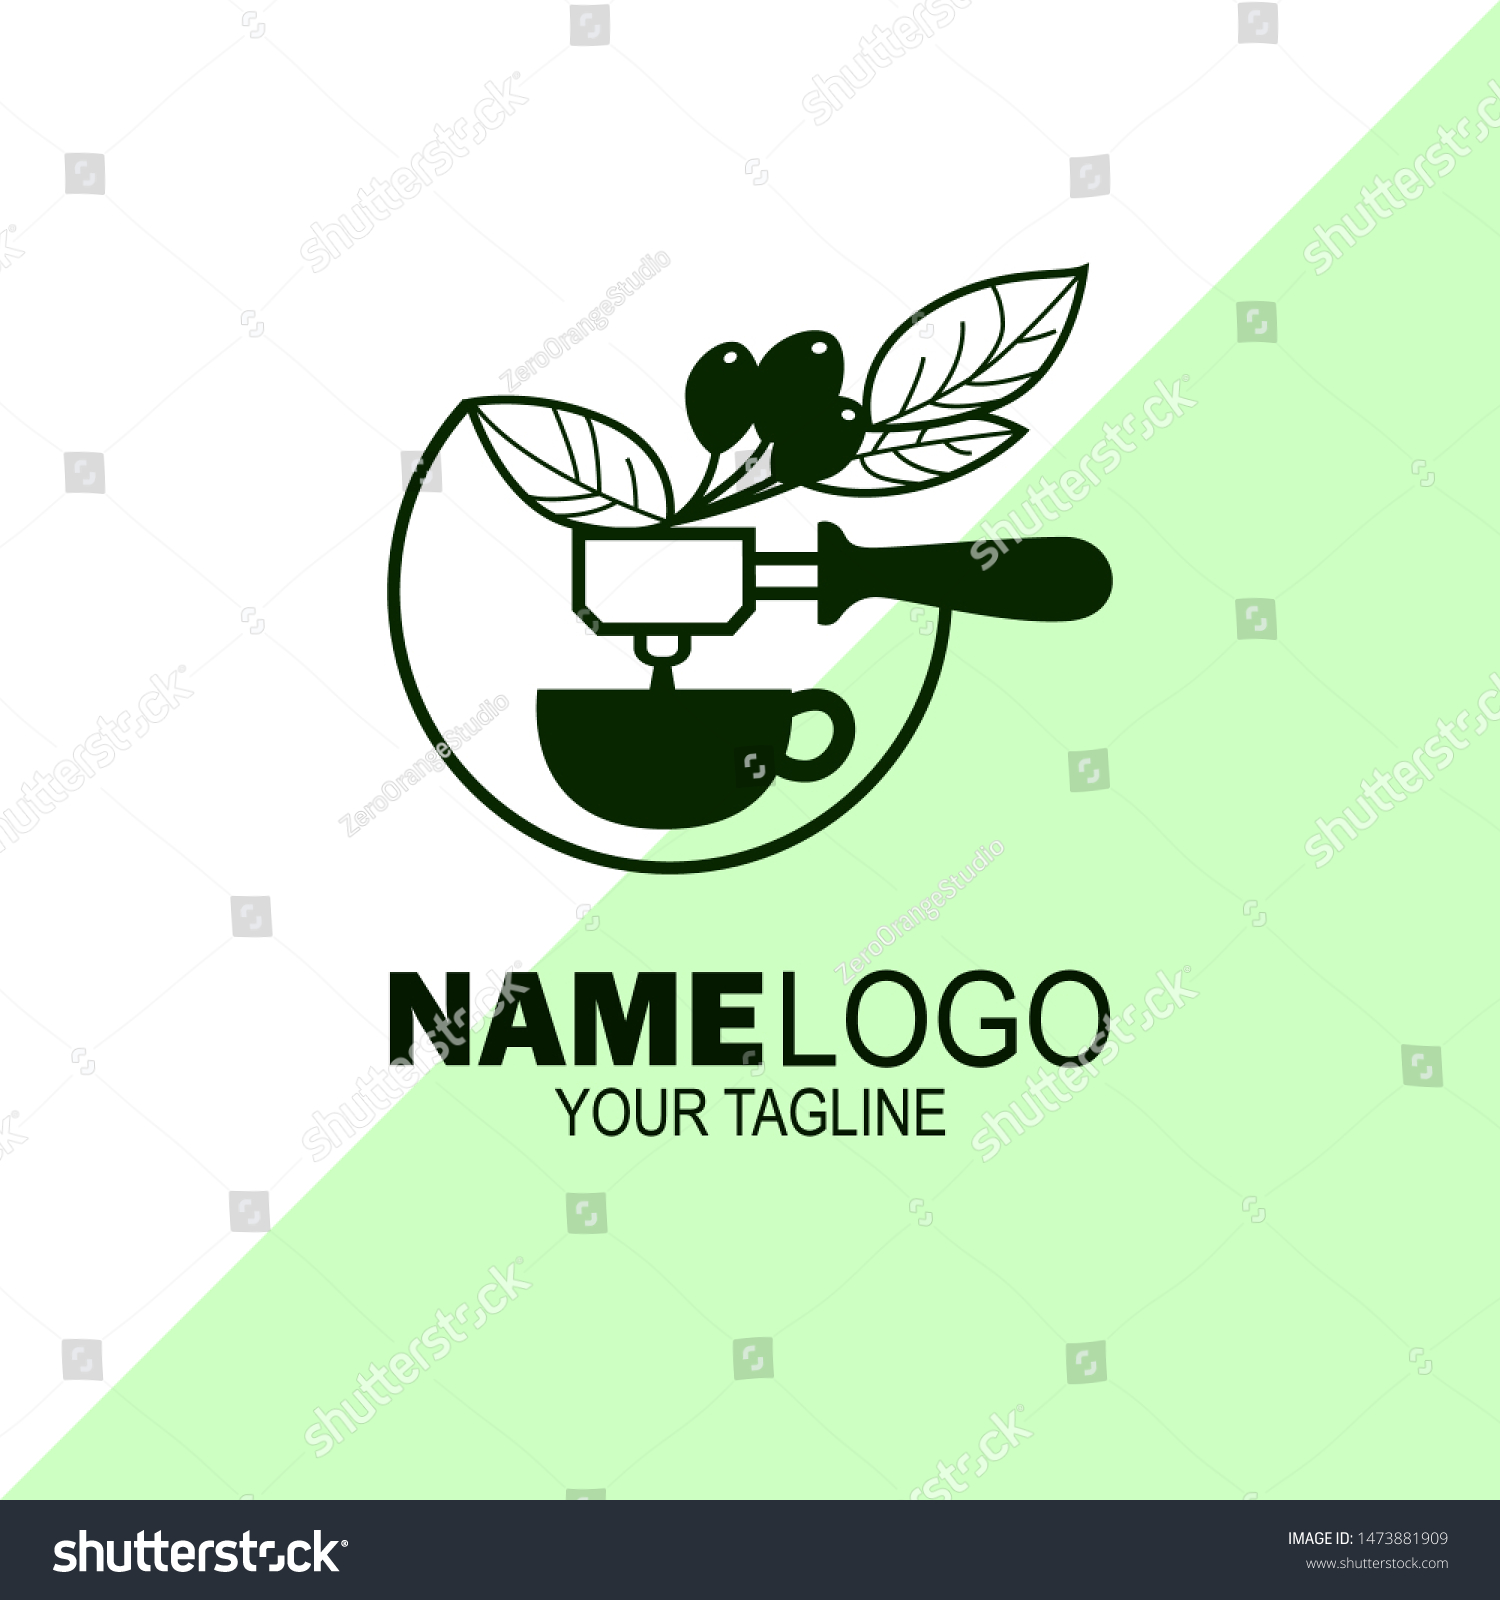 silhouette logos coffee trees portafilter cups stock vector royalty free 1473881909 https www shutterstock com image vector silhouette logos coffee trees portafilter cups 1473881909